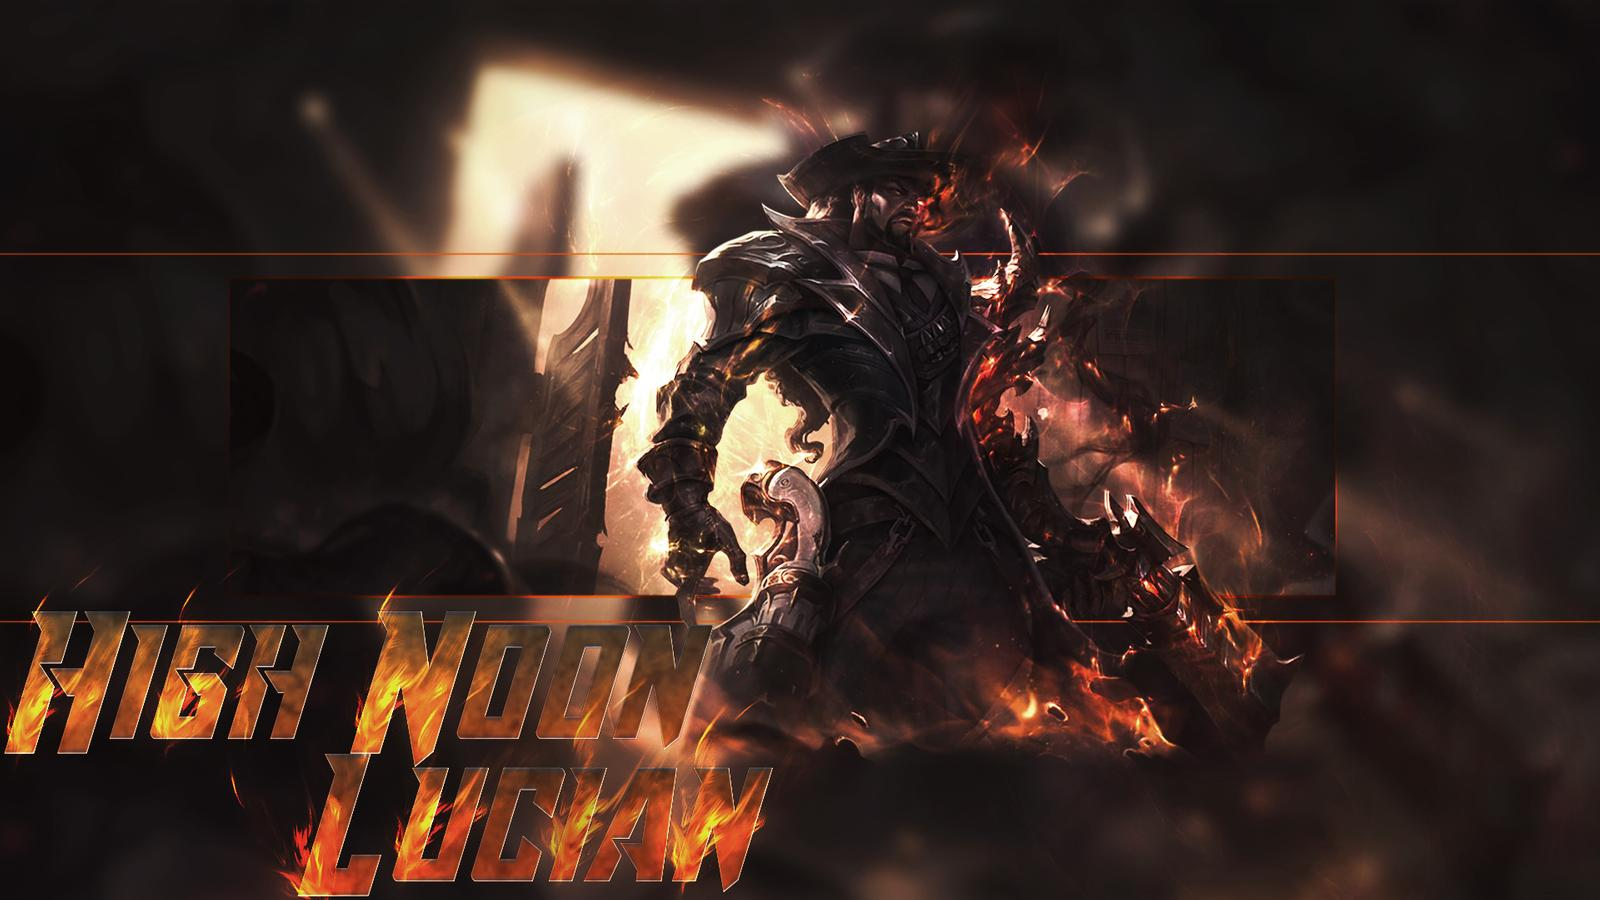 League of Legends High Noon Lucian Wallpaper by Mr Booker on 1600x900